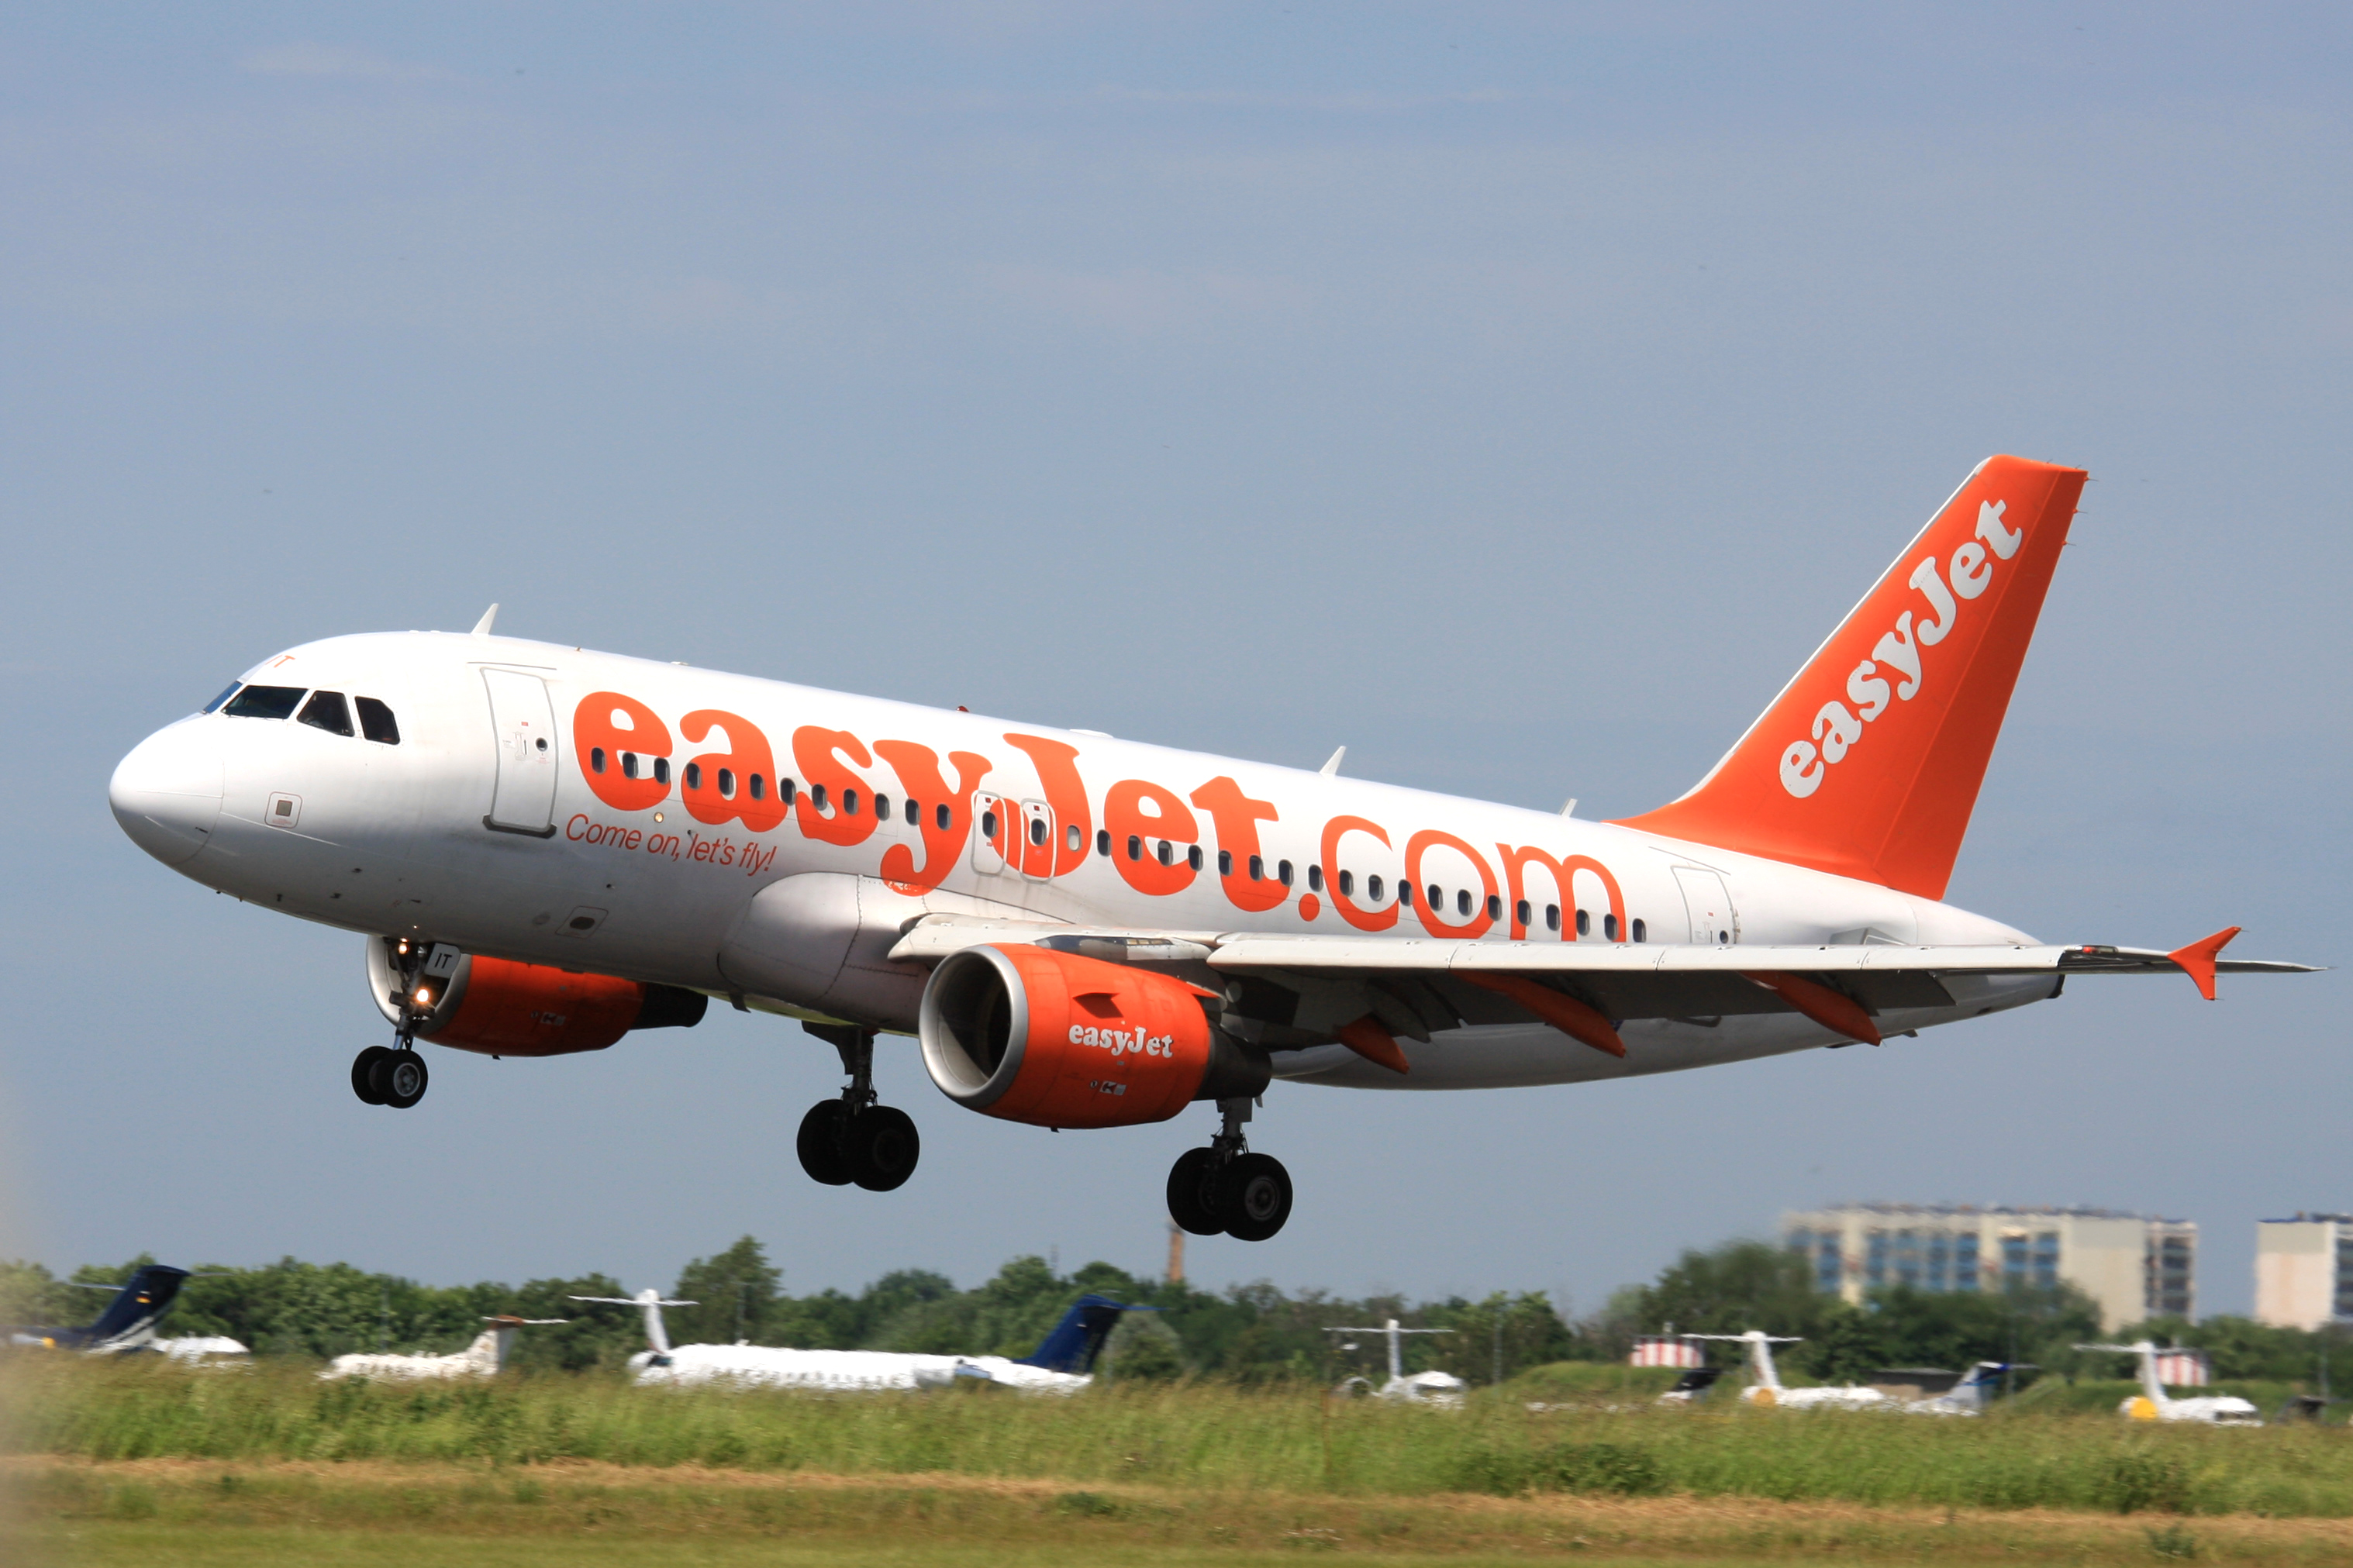 easyjet - photo #37